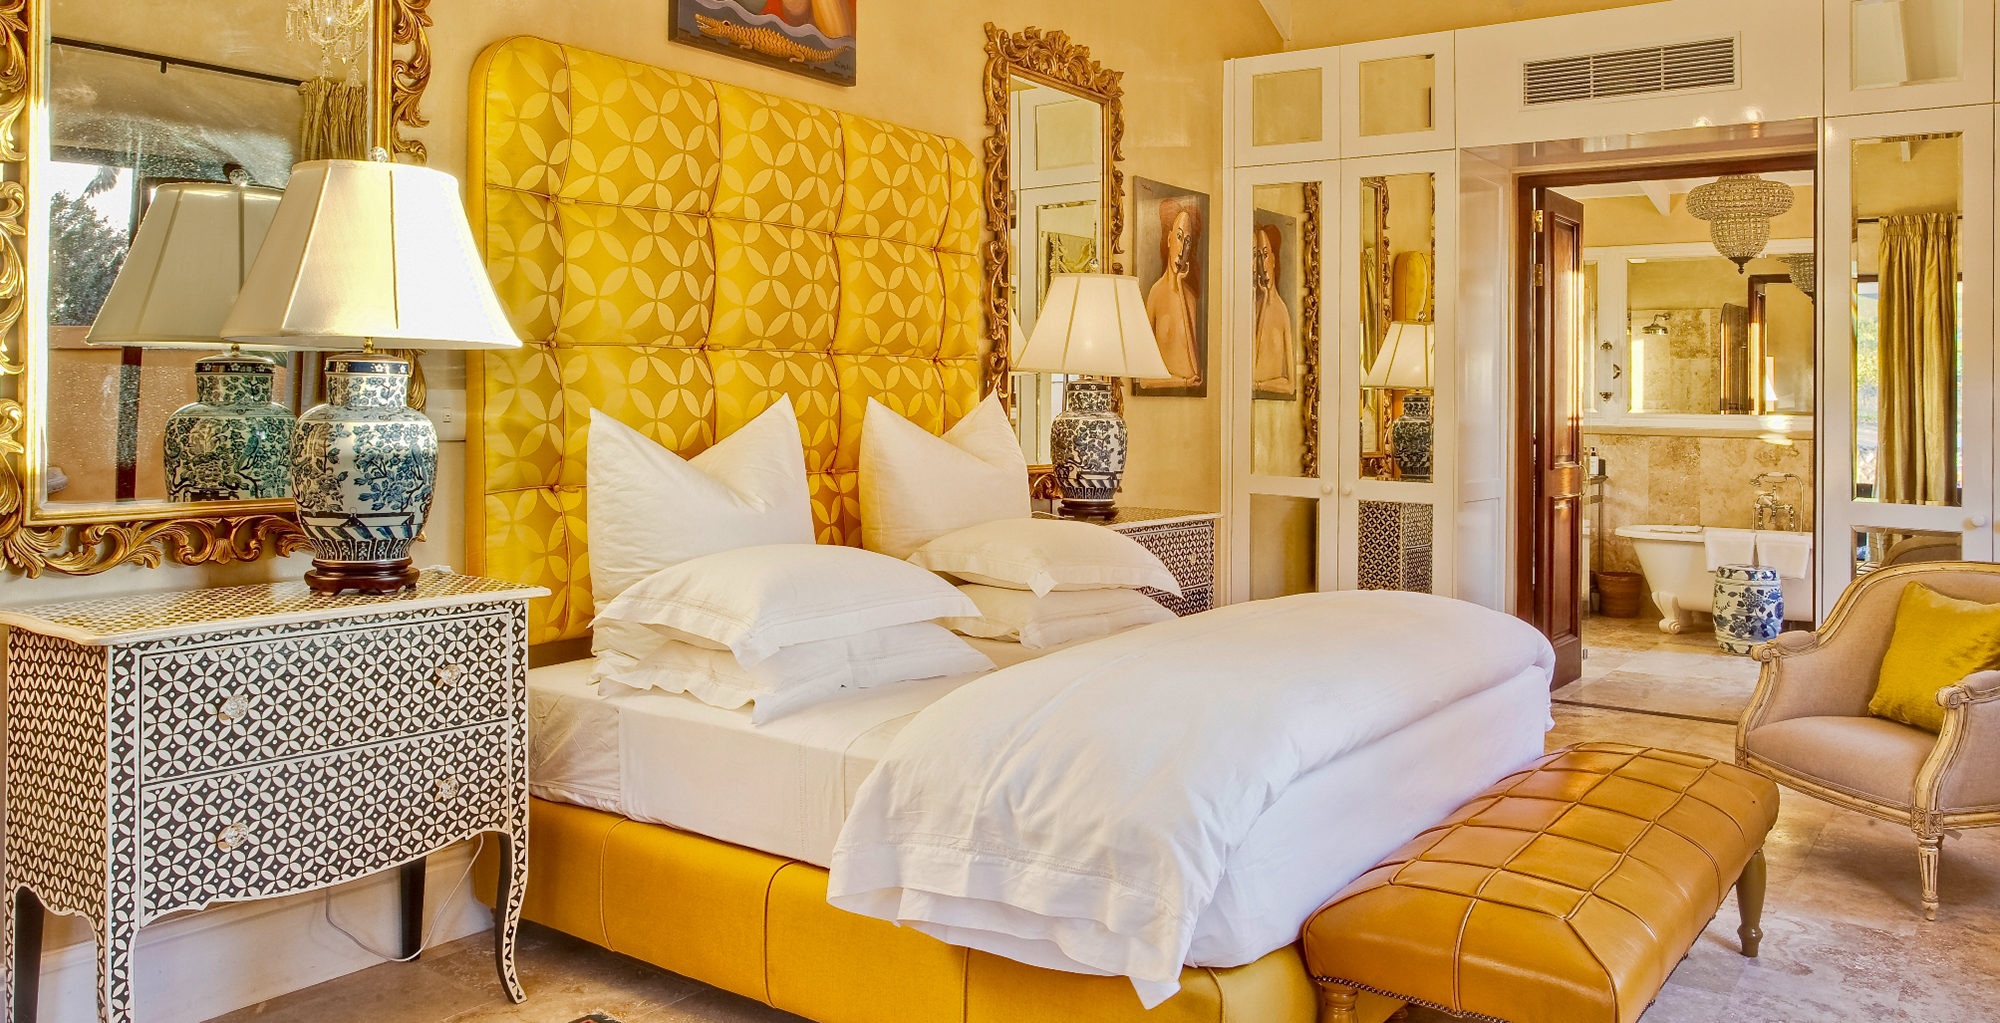 South-Africa-La-Residence-Bedroom